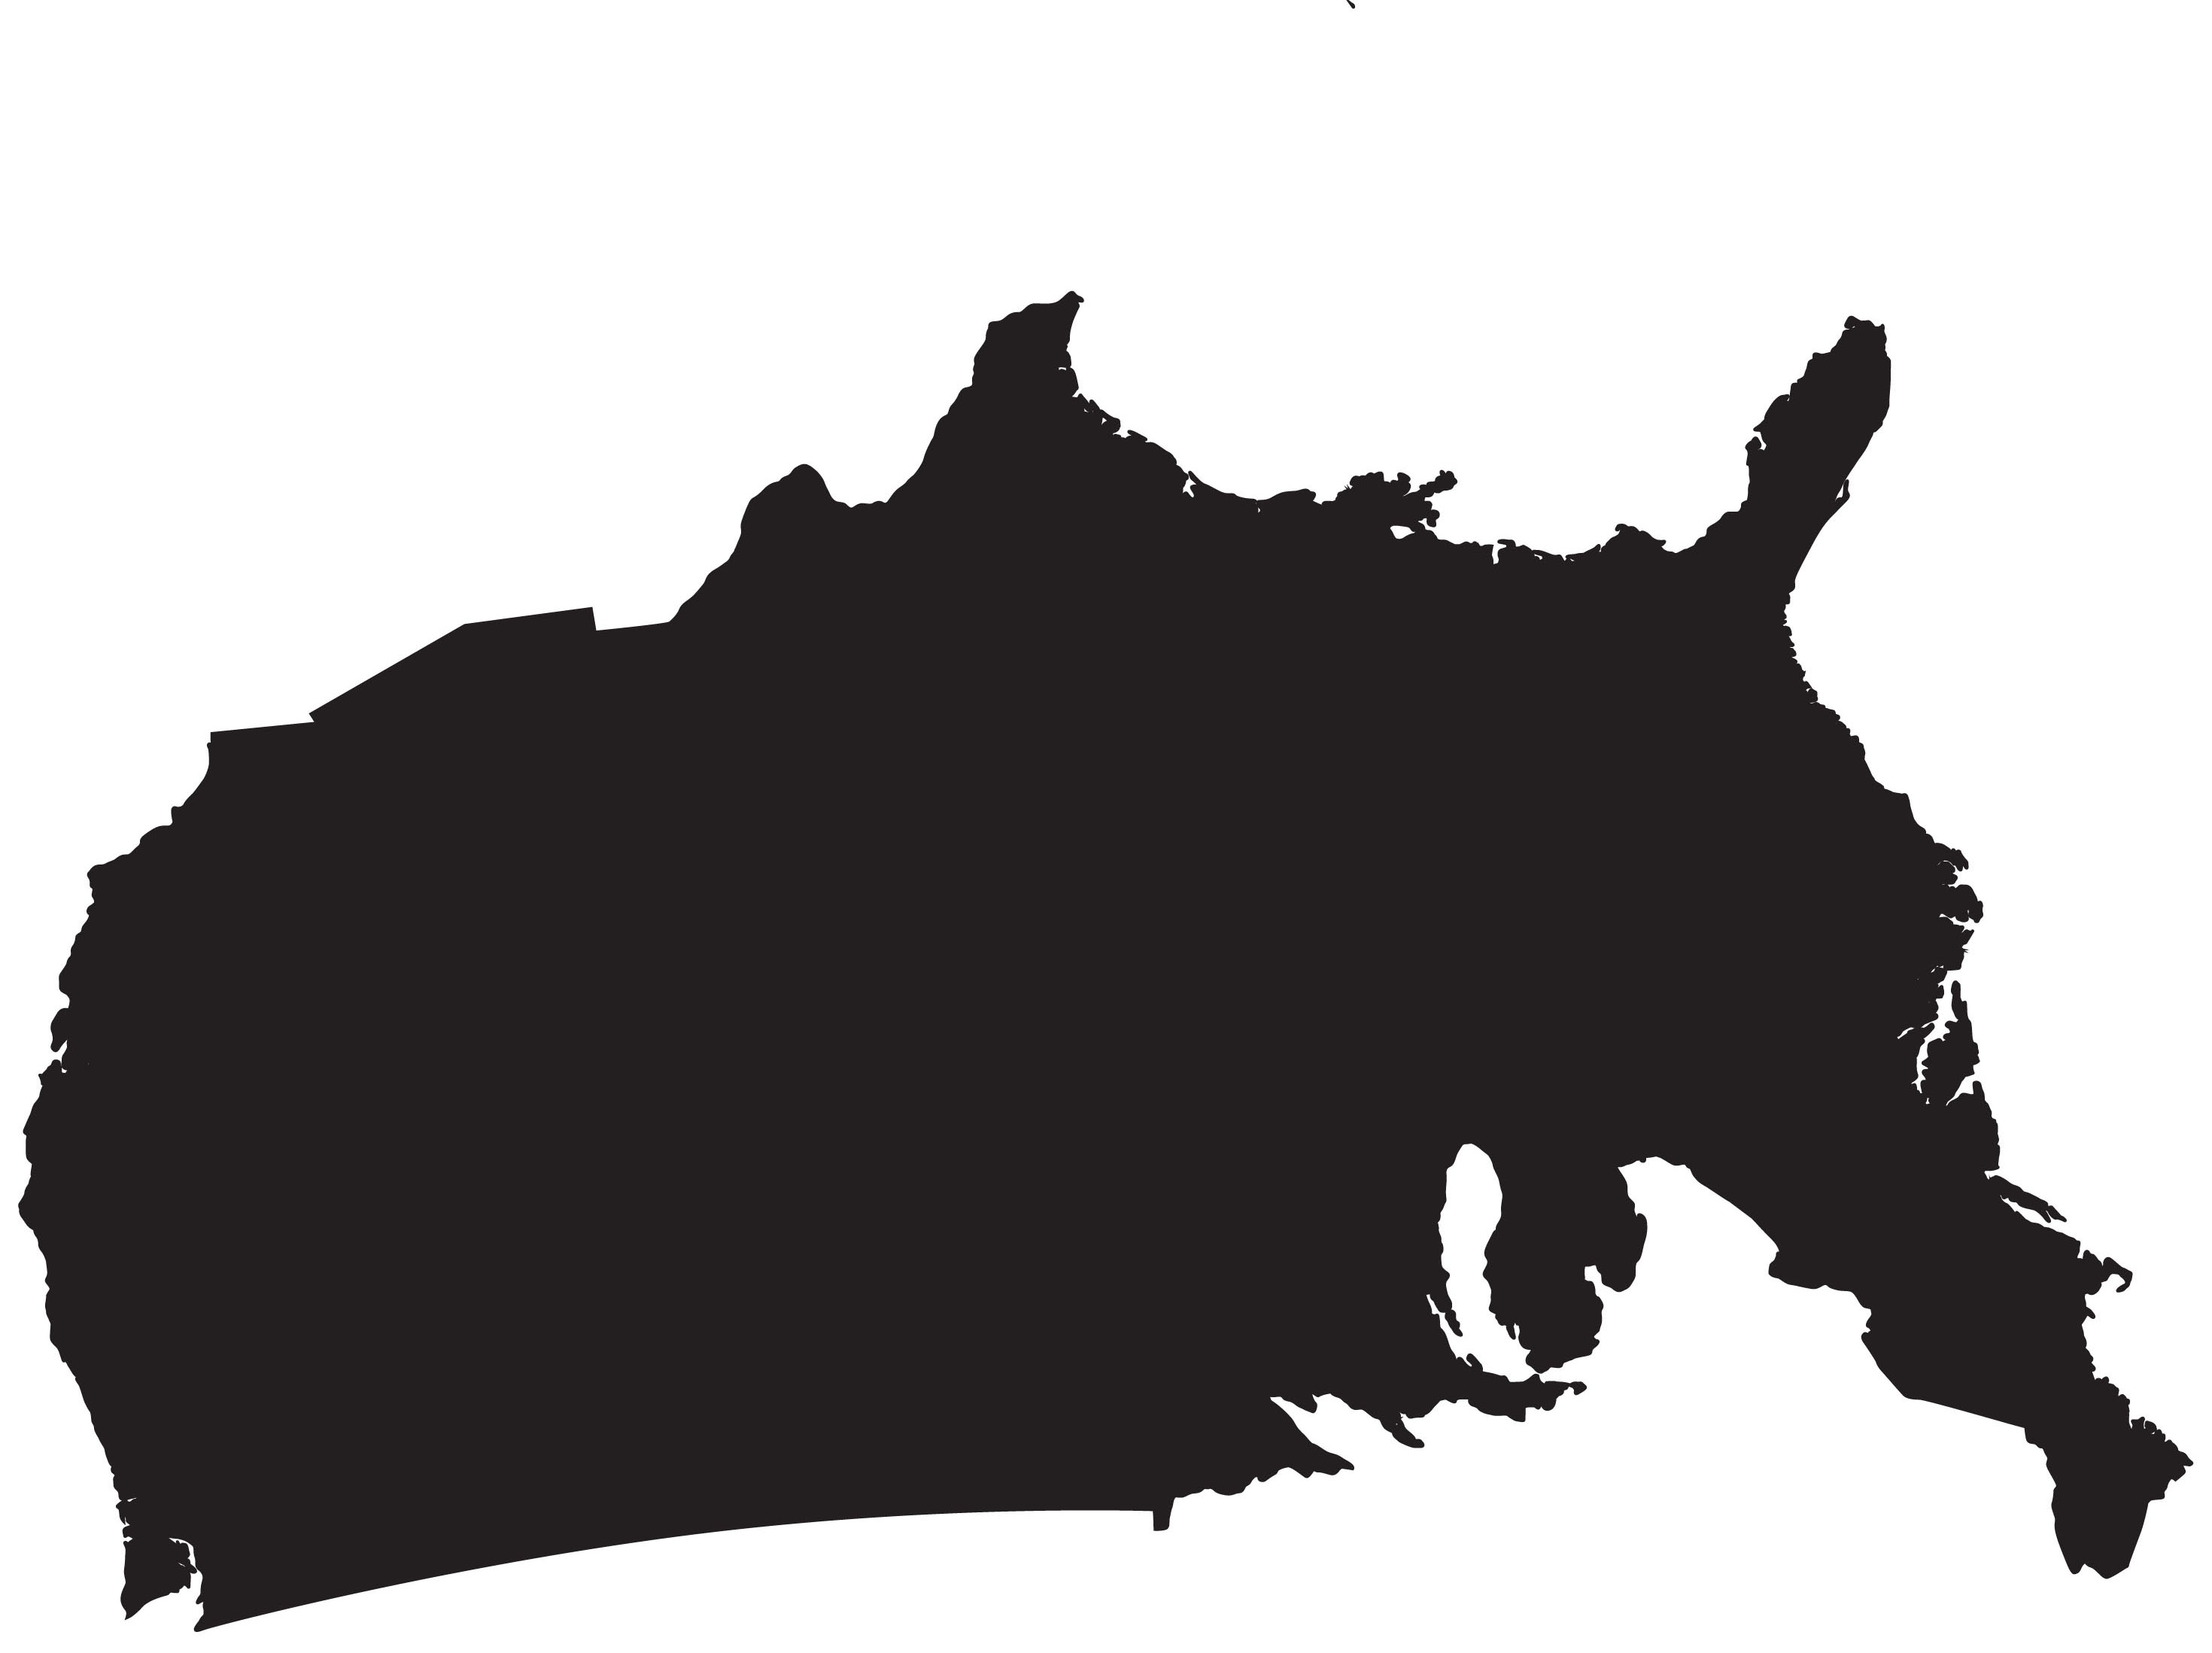 Q. 4 This is an upside-down map of MOST of what country?